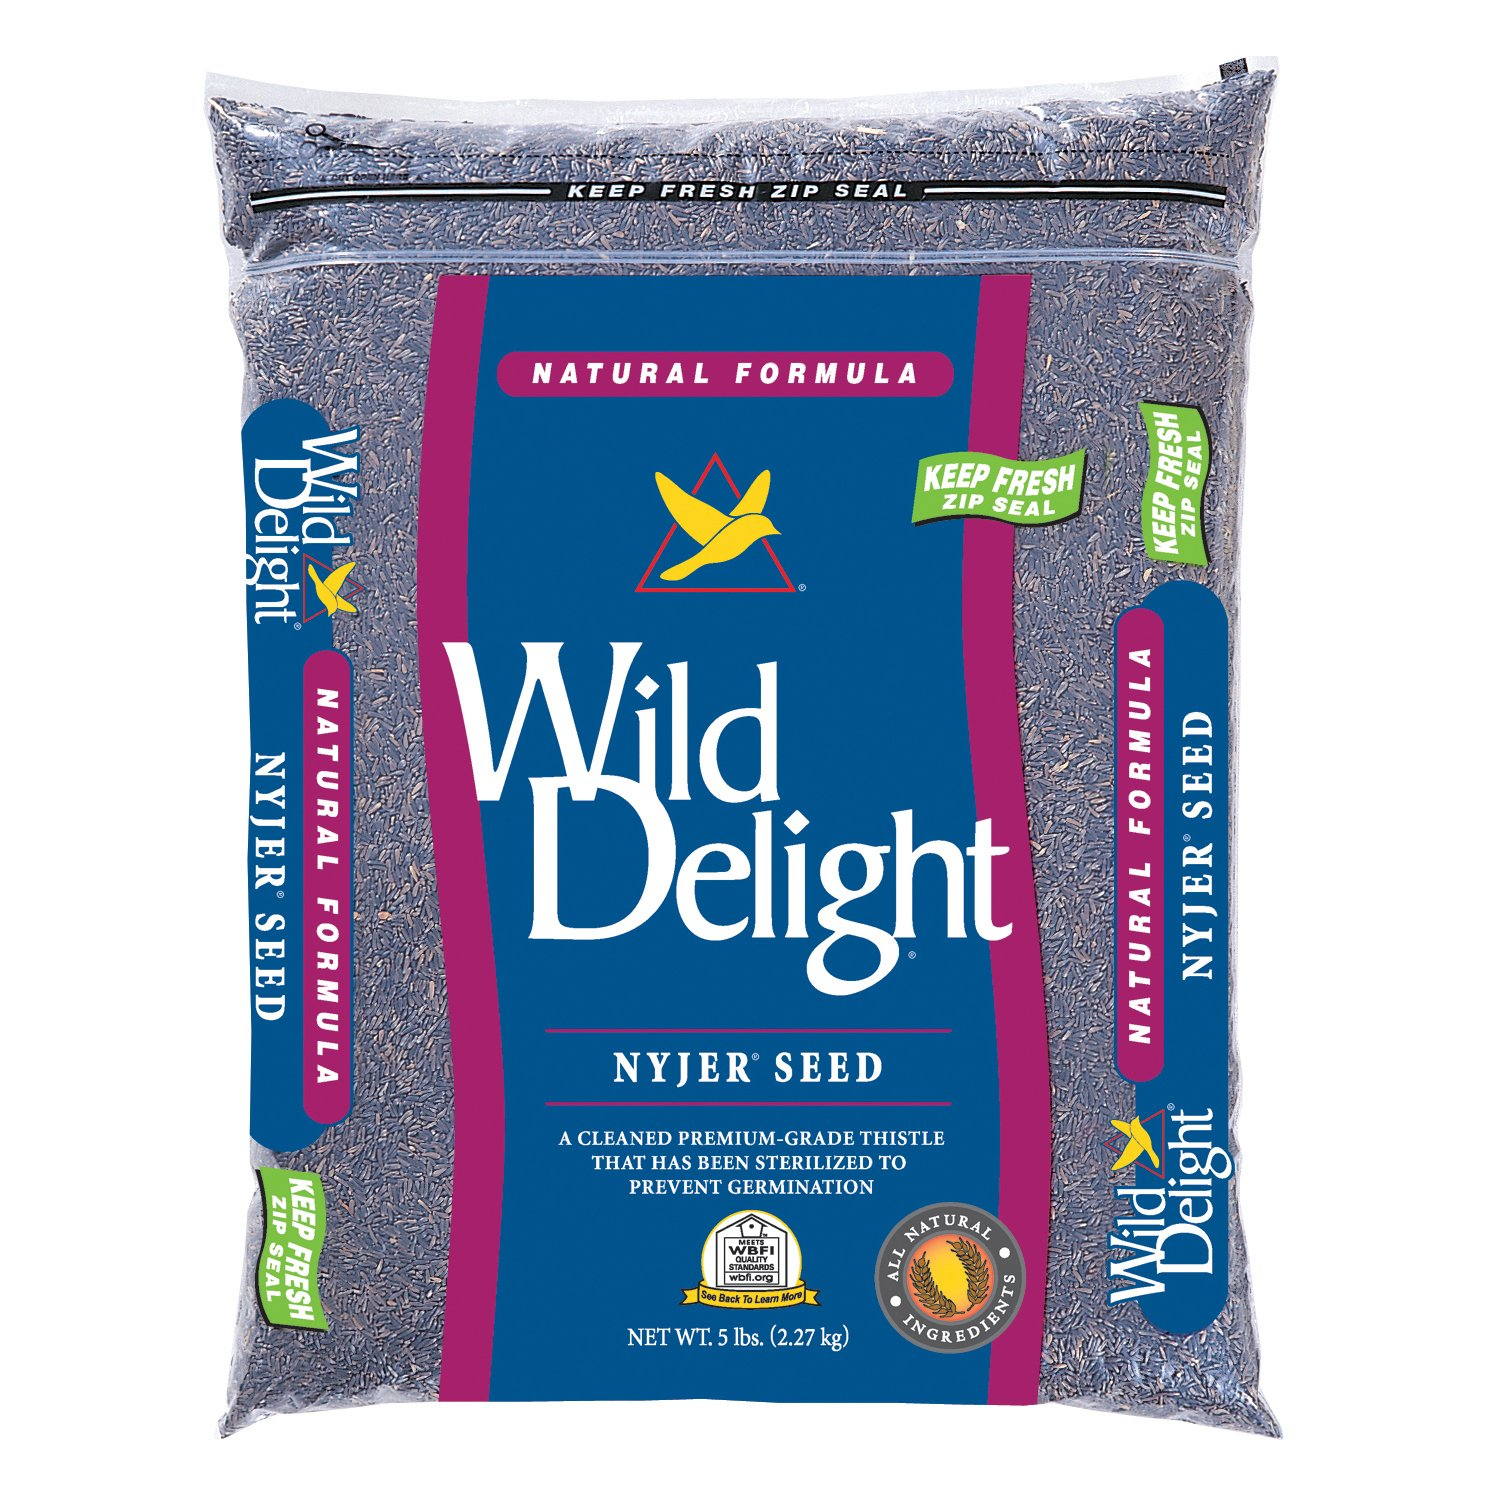 Wild Delight Nyjer Seed, 5 lb by Wild Delight